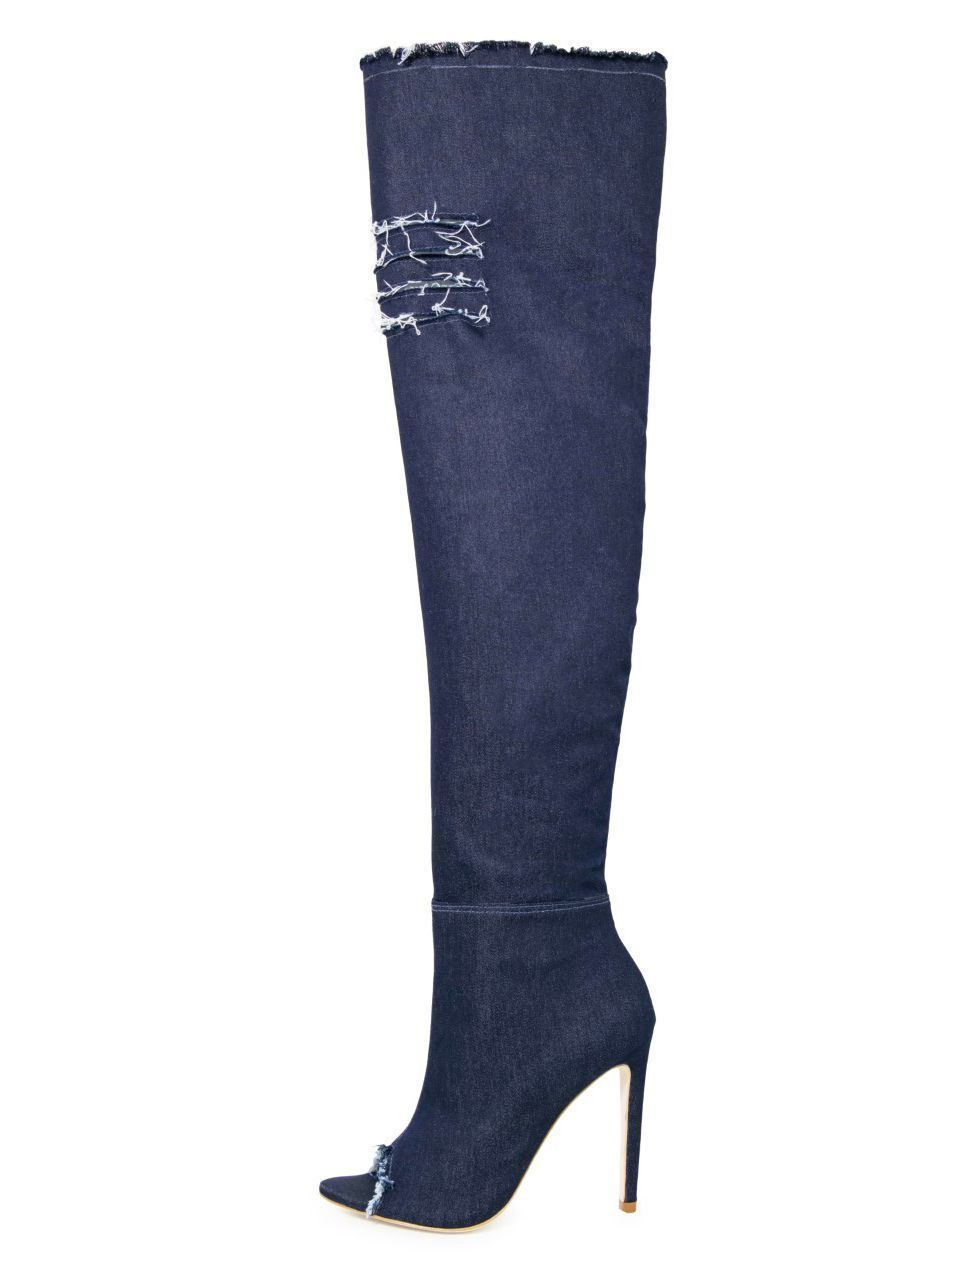 Bota Open boot Conceito Fashion Over The Knee Jeans Azul Escuro